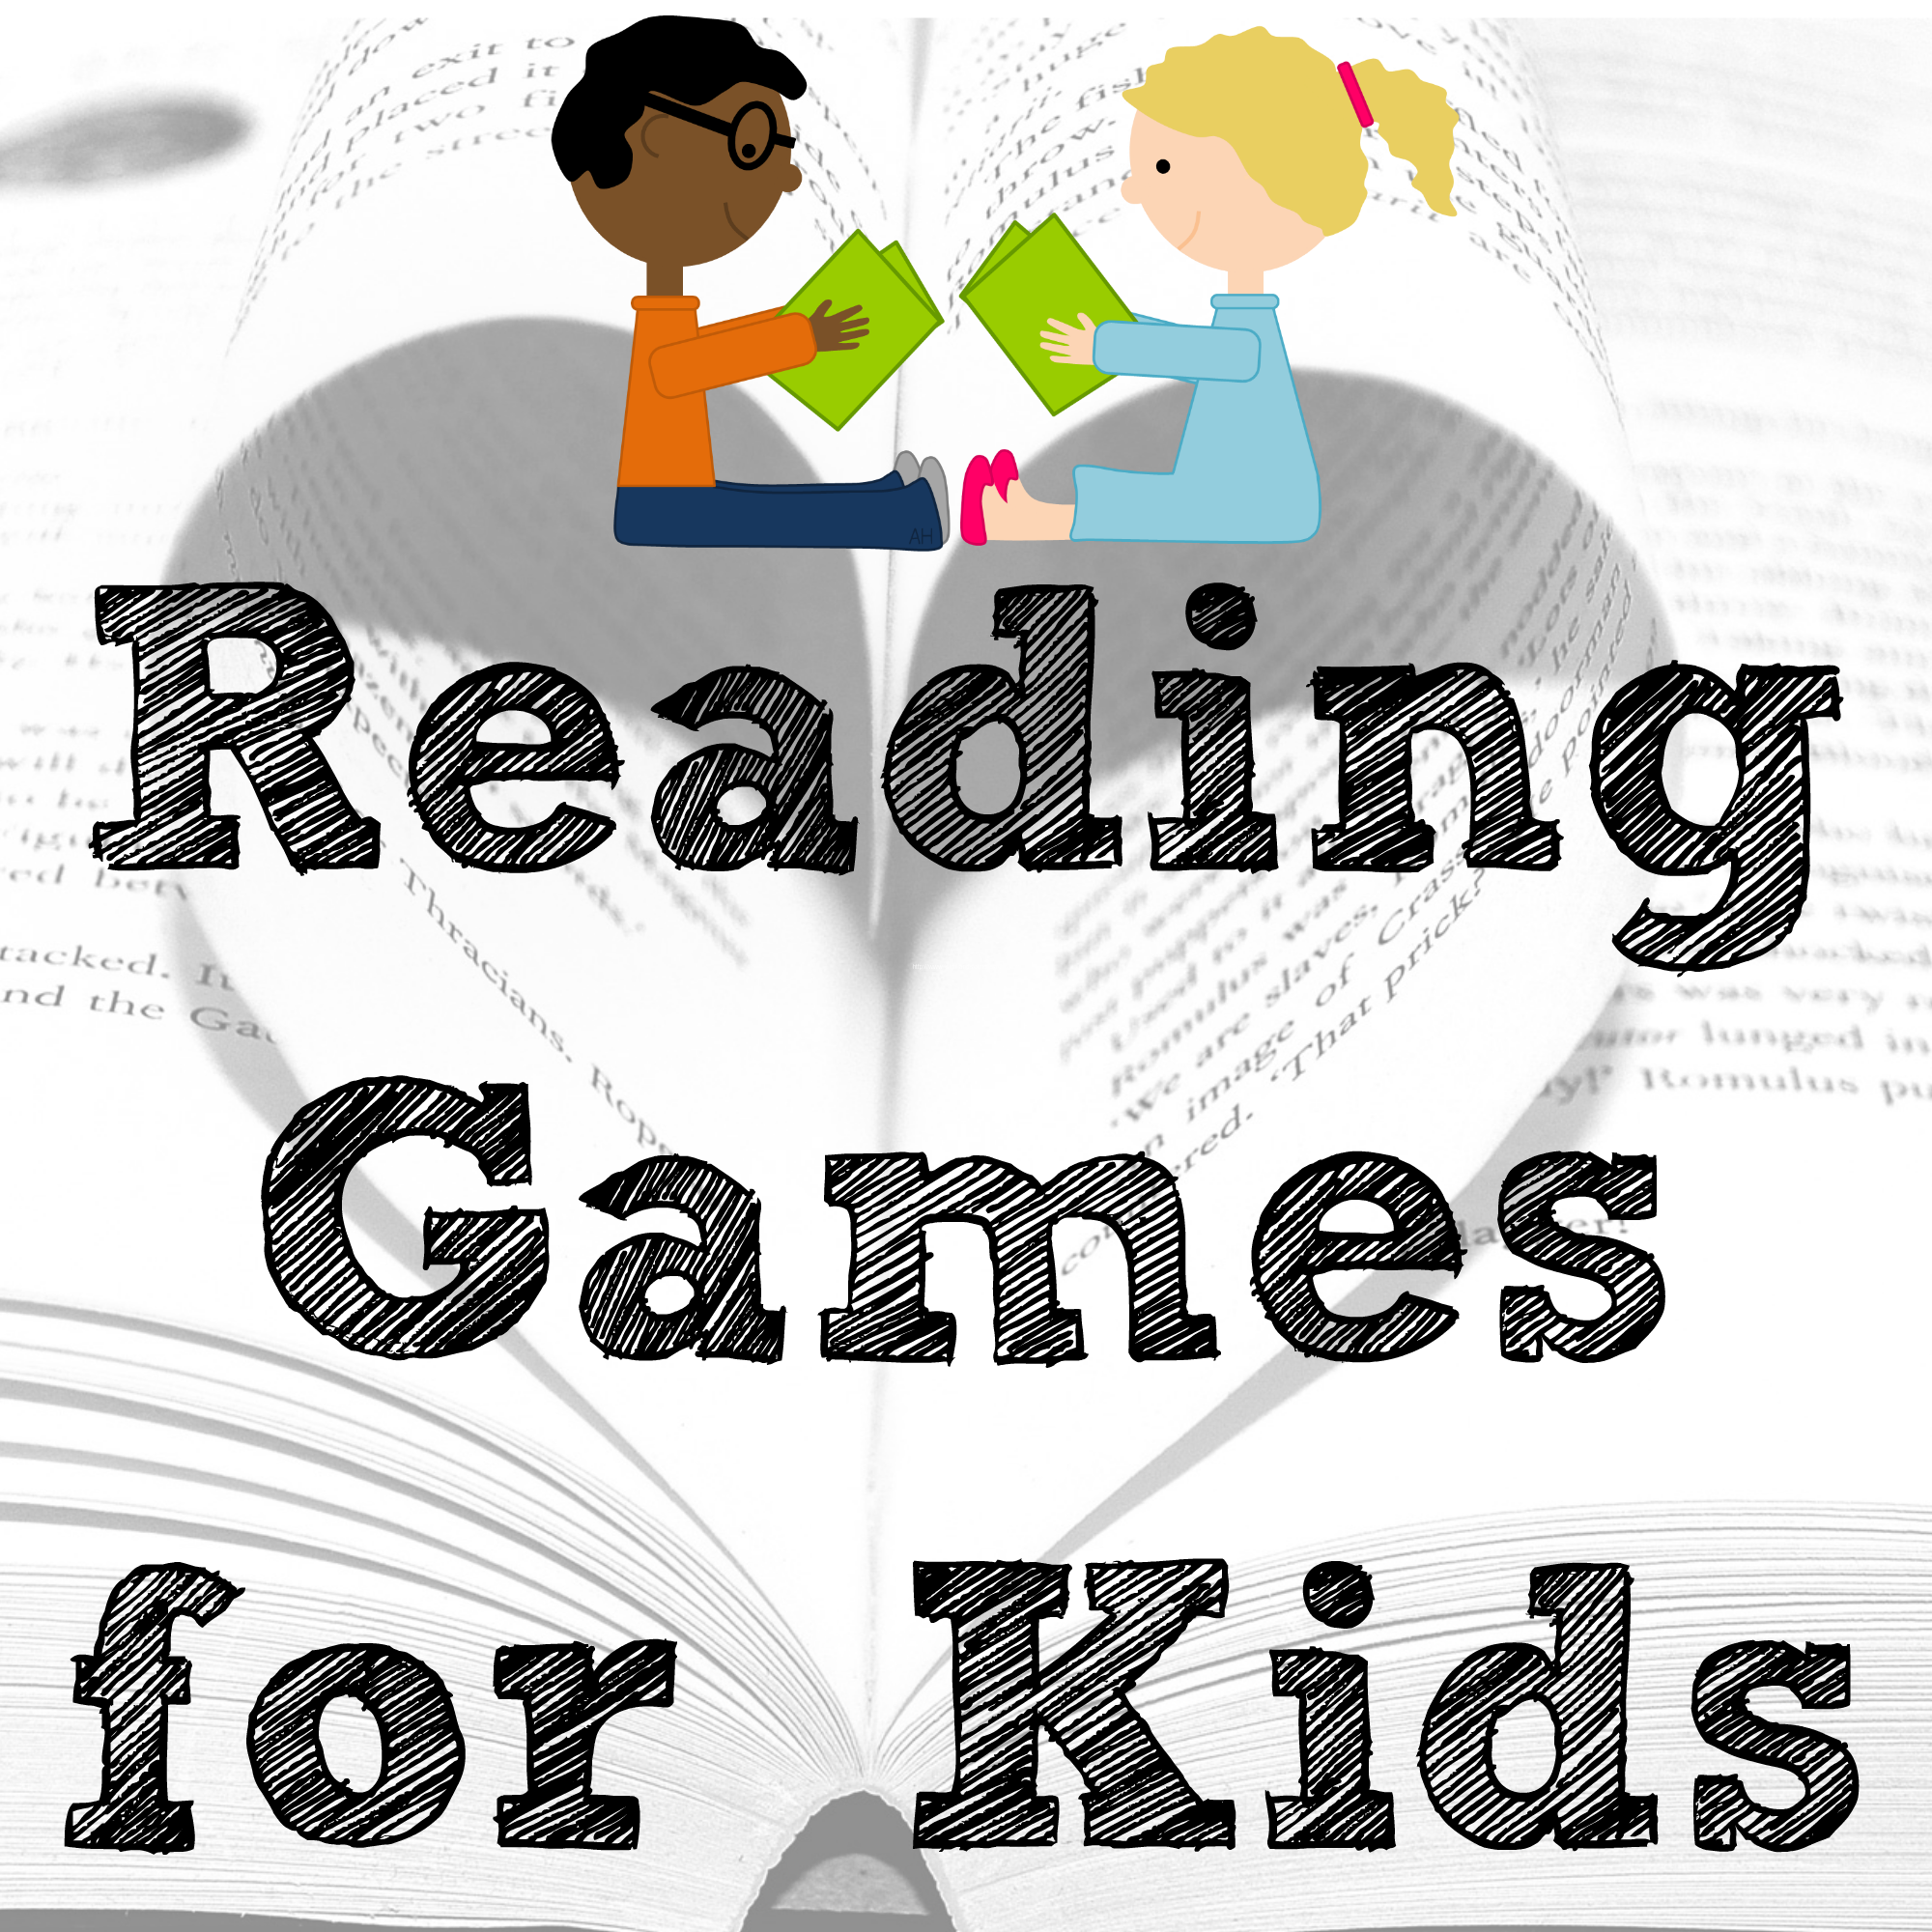 Worksheet Online Reading Help reading games for kids to help your child learn read